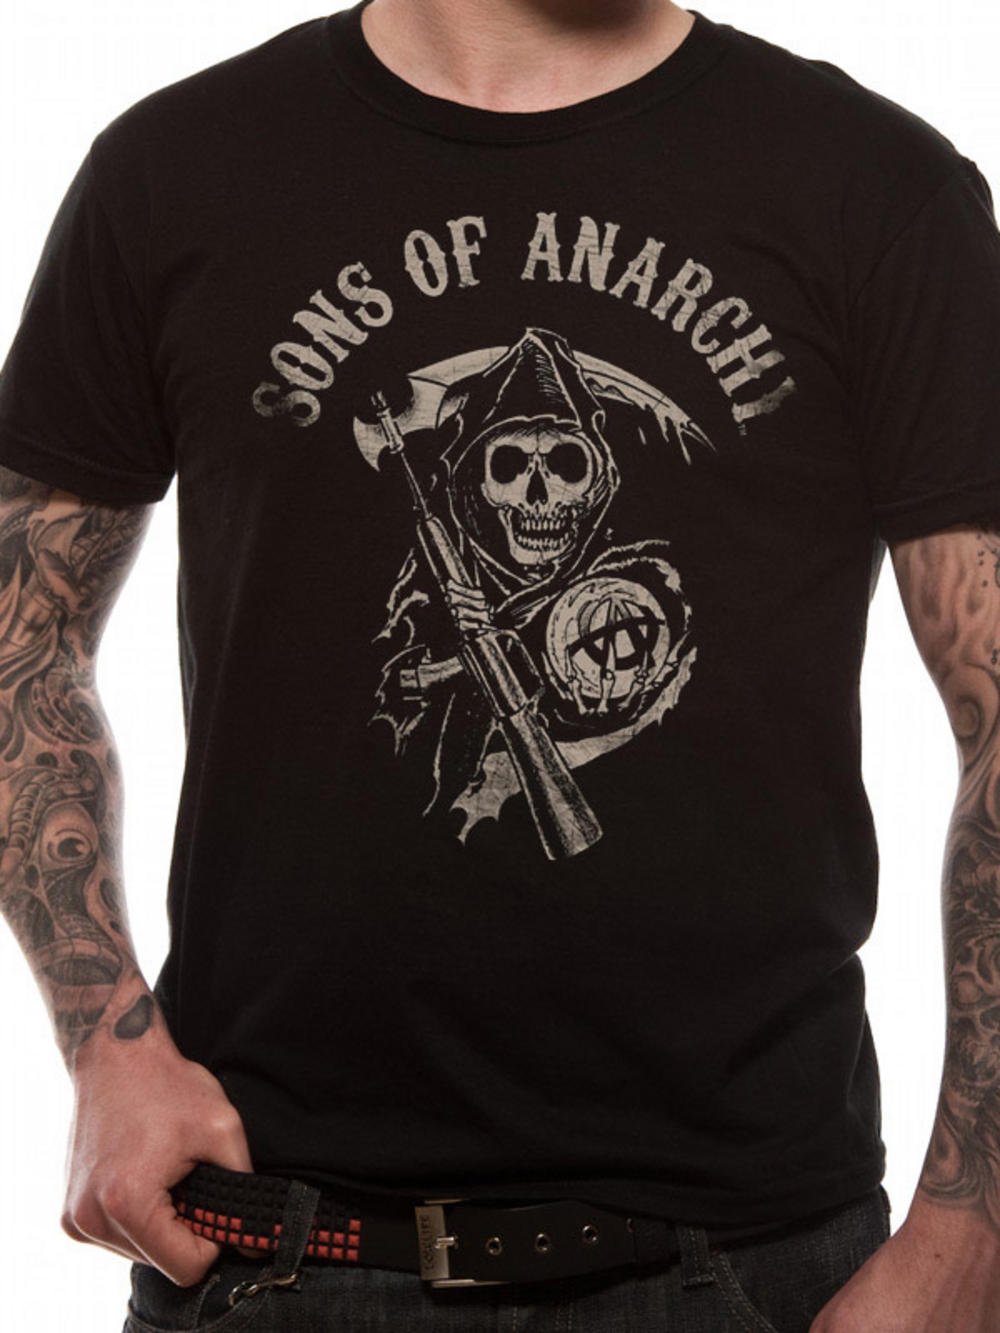 Sons Of Anarchy (Main Logo) T-shirt. Buy Sons Of Anarchy (Main